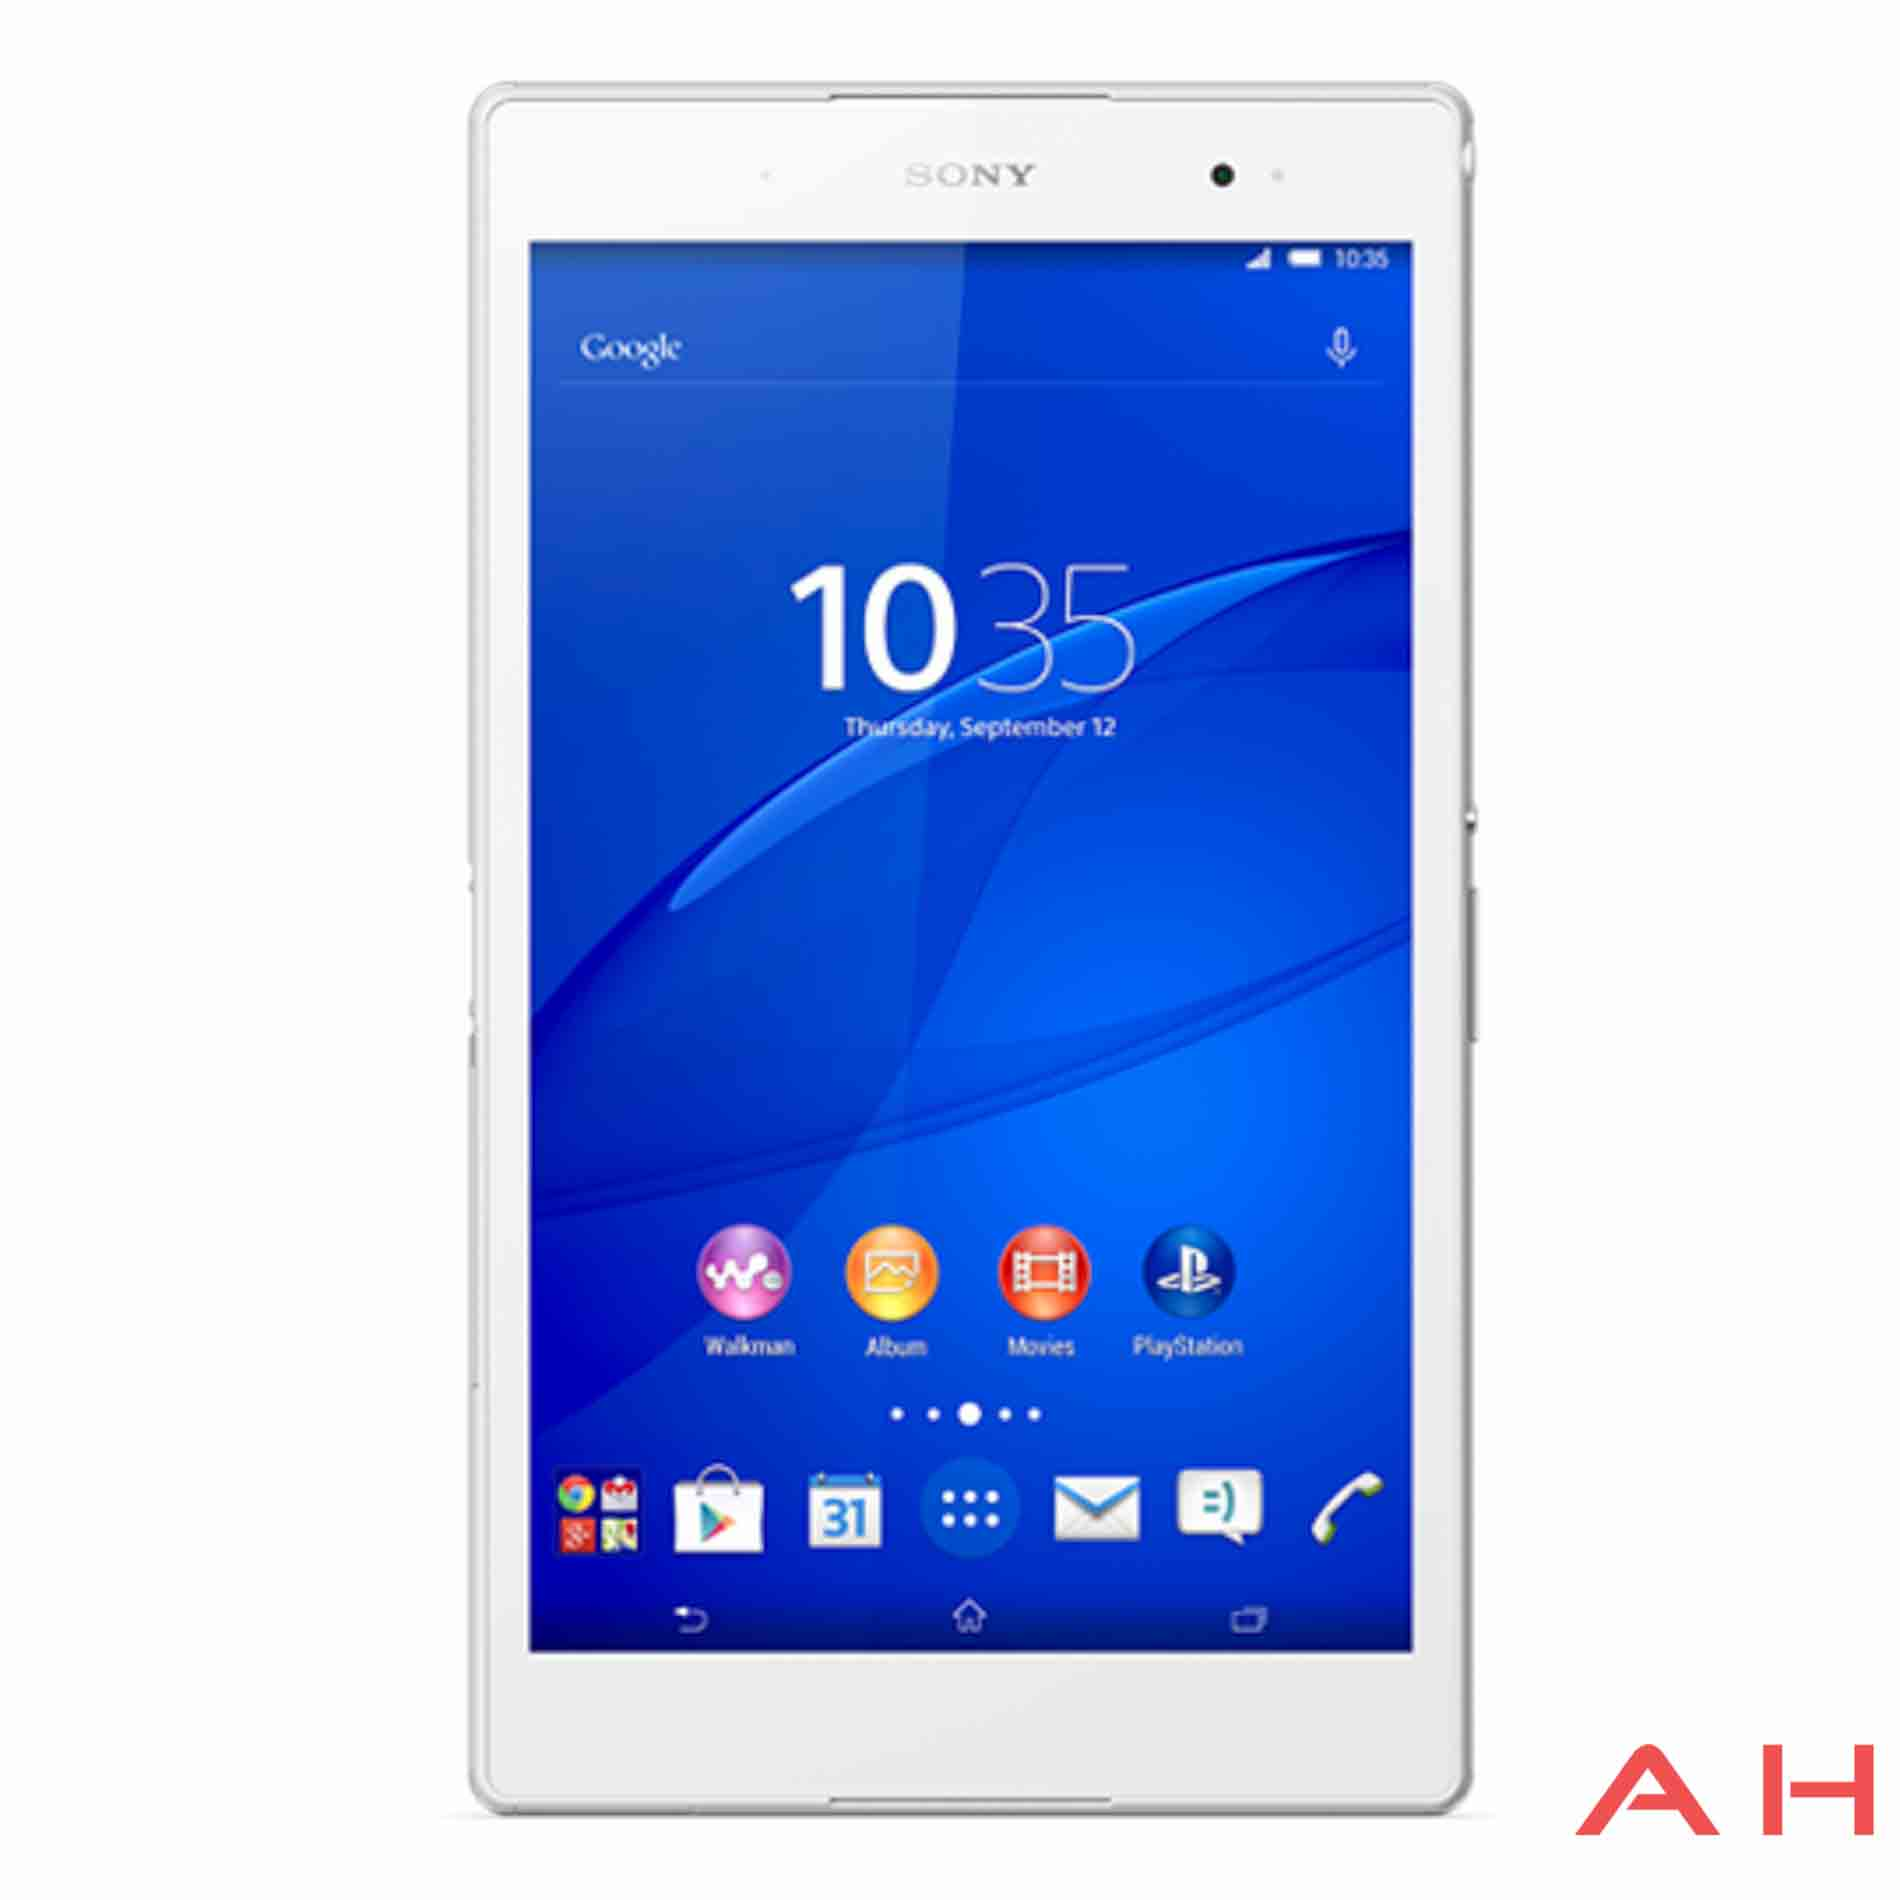 Sony-Xperia-Z3-Tablet-Compact-AH-2